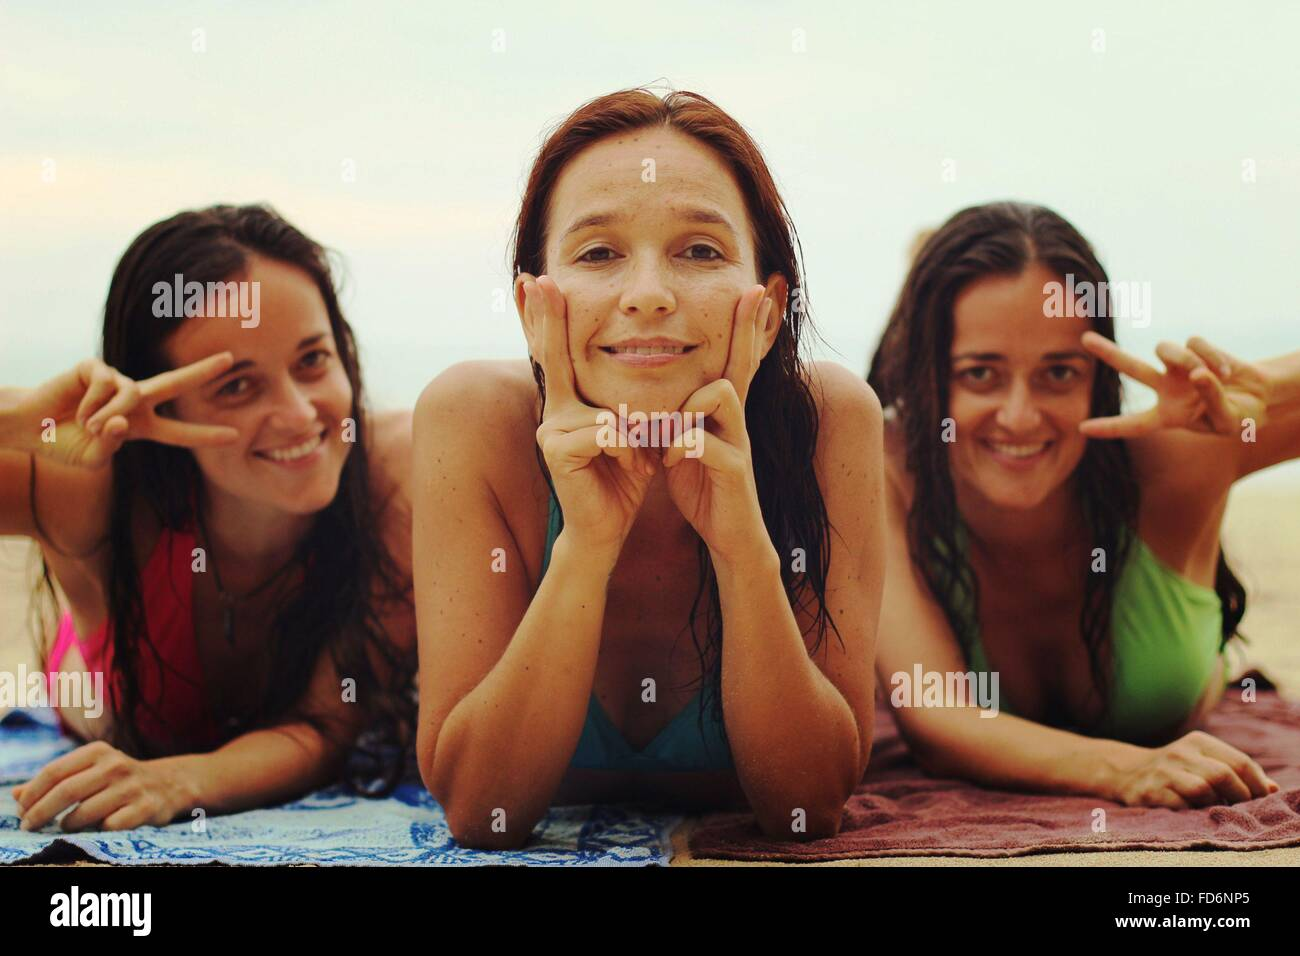 Portrait Of Happy Friends Making Peace Sign On Beach - Stock Image